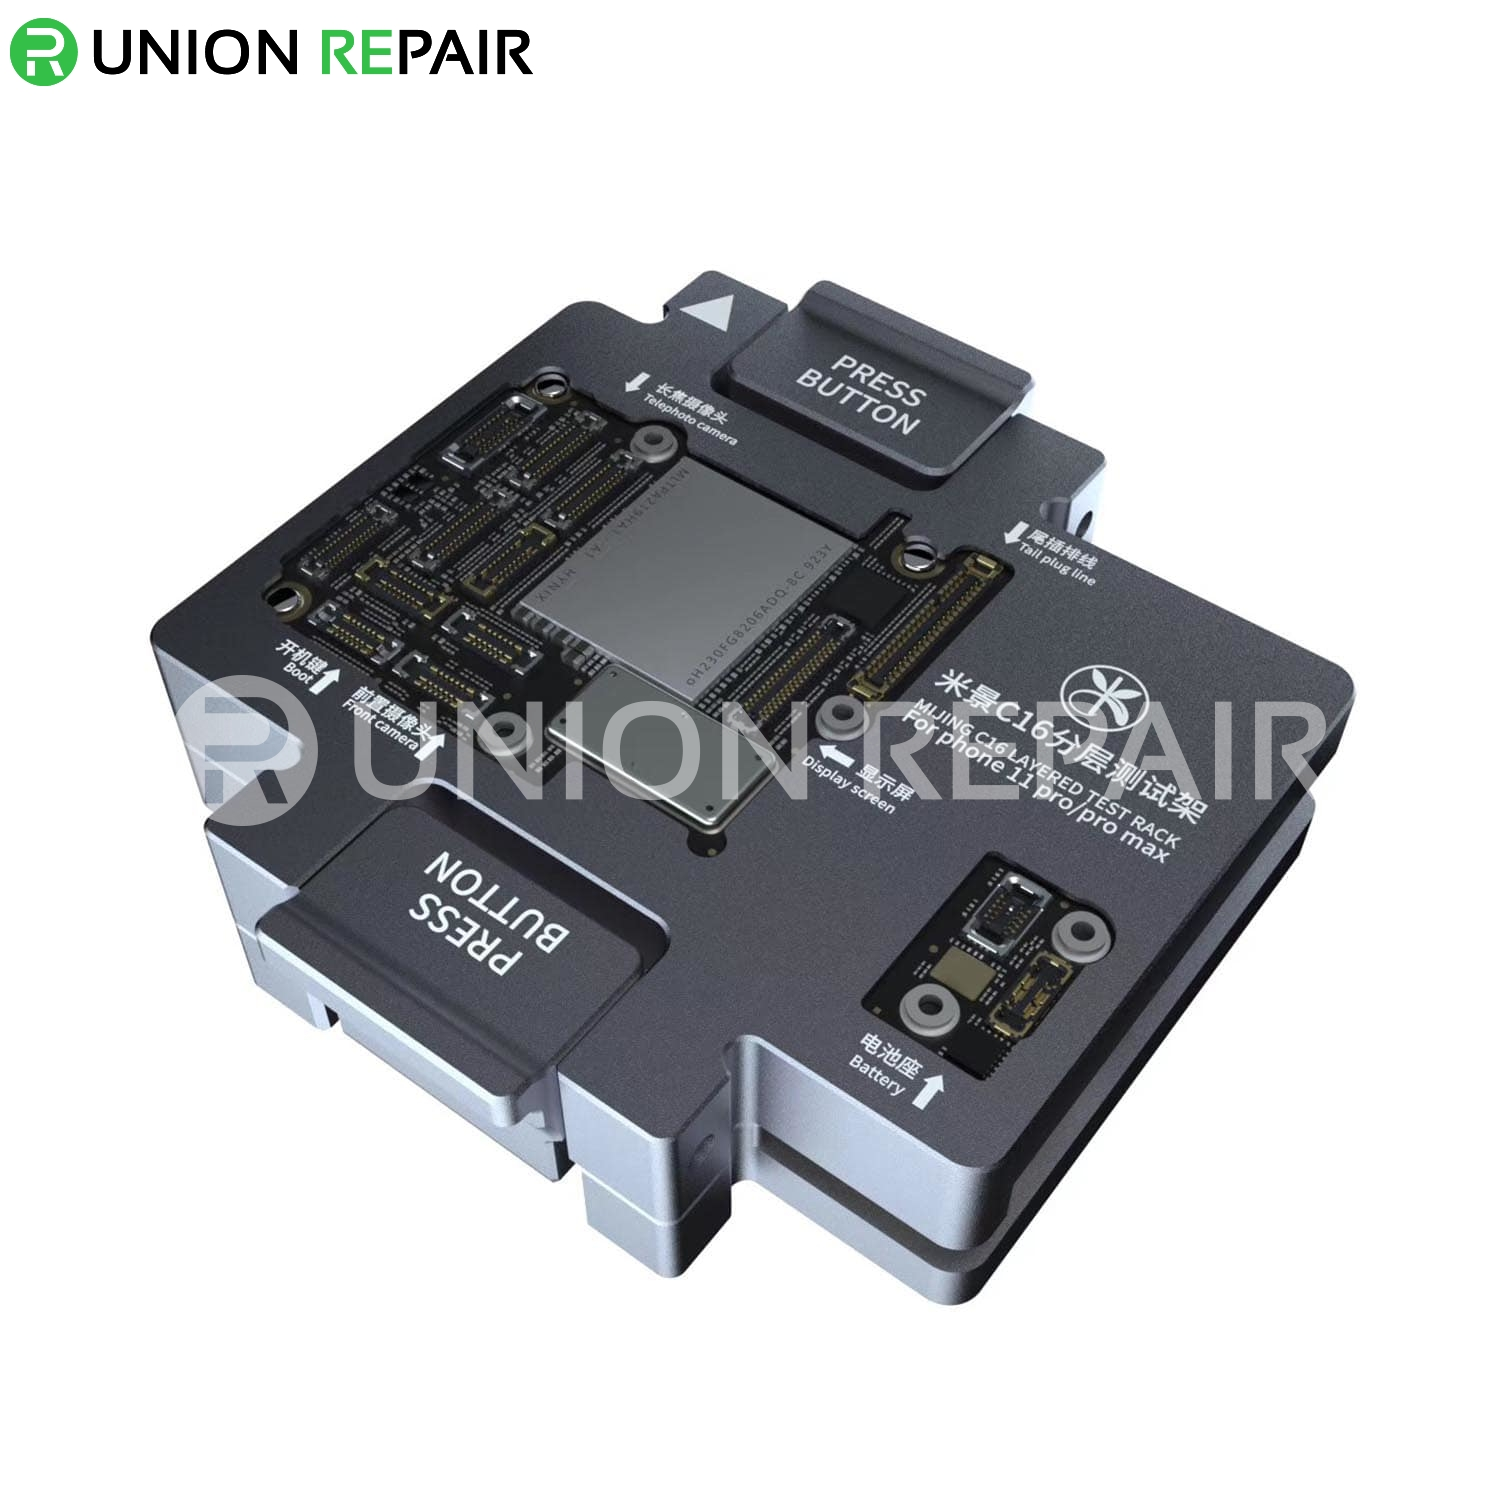 MiJing C16 iPhone 11 Pro /11 Pro Max Main Board Function Testing Fixture